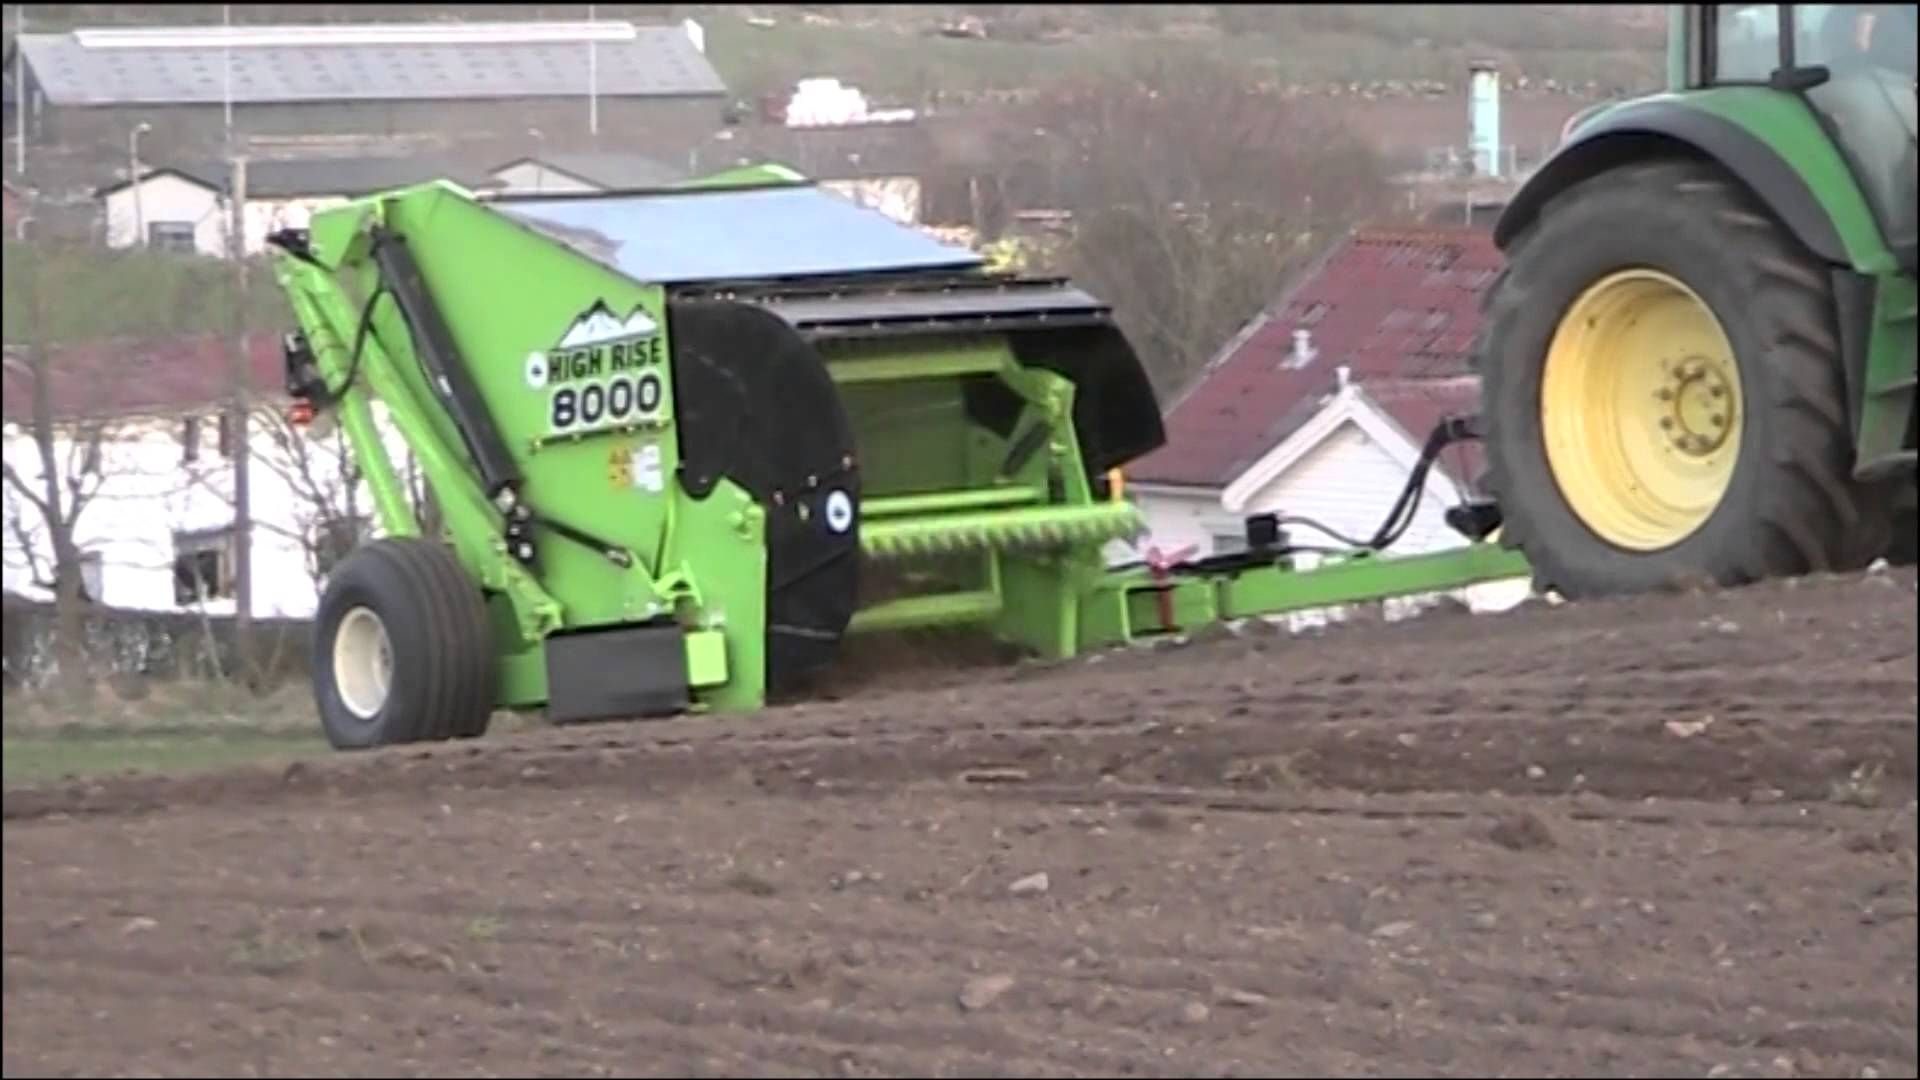 Rock Picker Schulte High Rise 8000 Picking Stones High